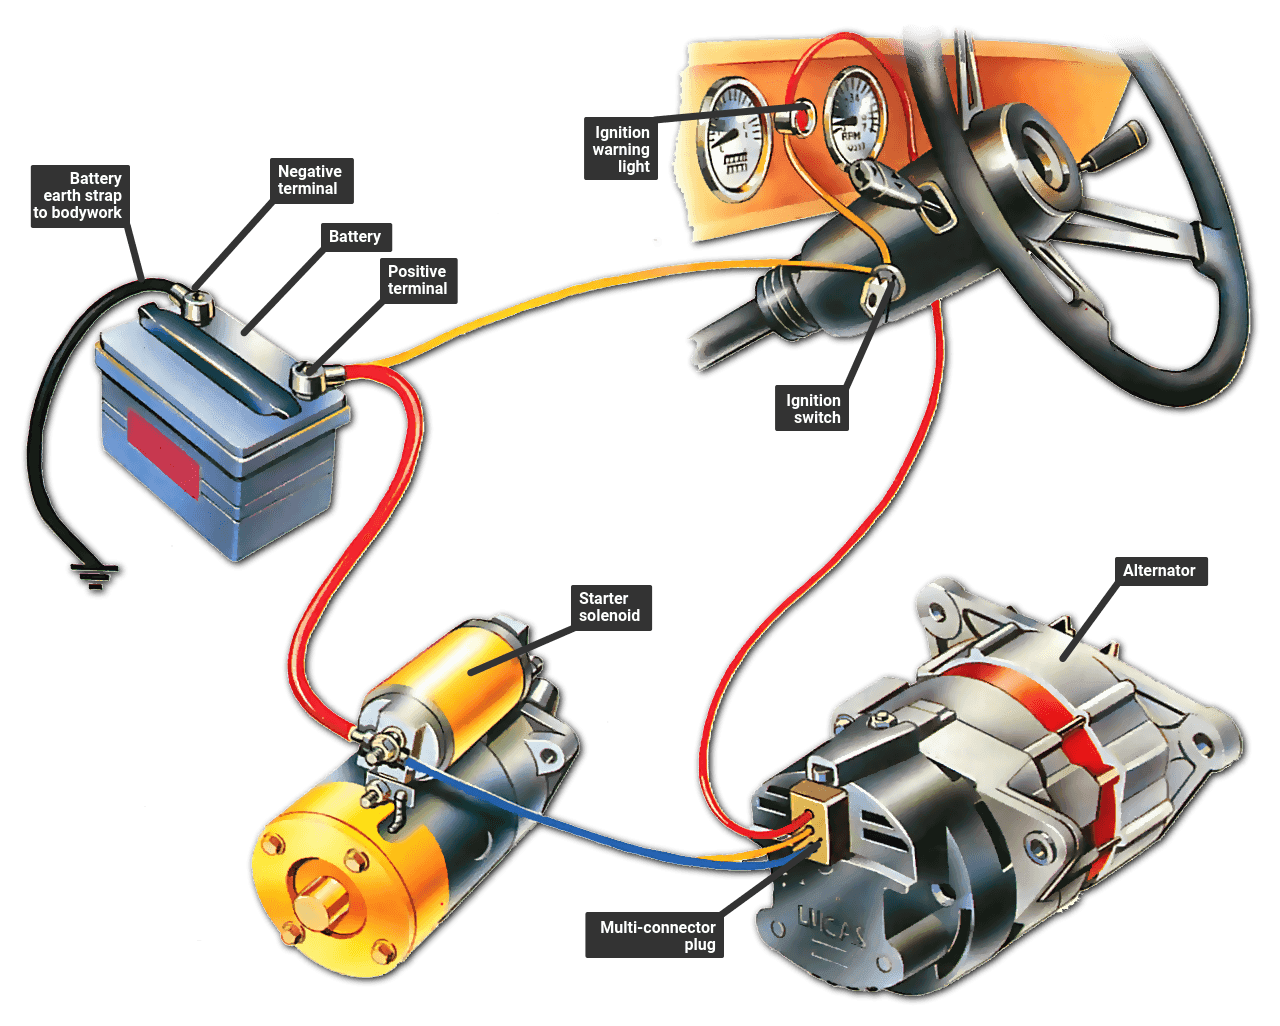 troubleshooting the ignition warning light